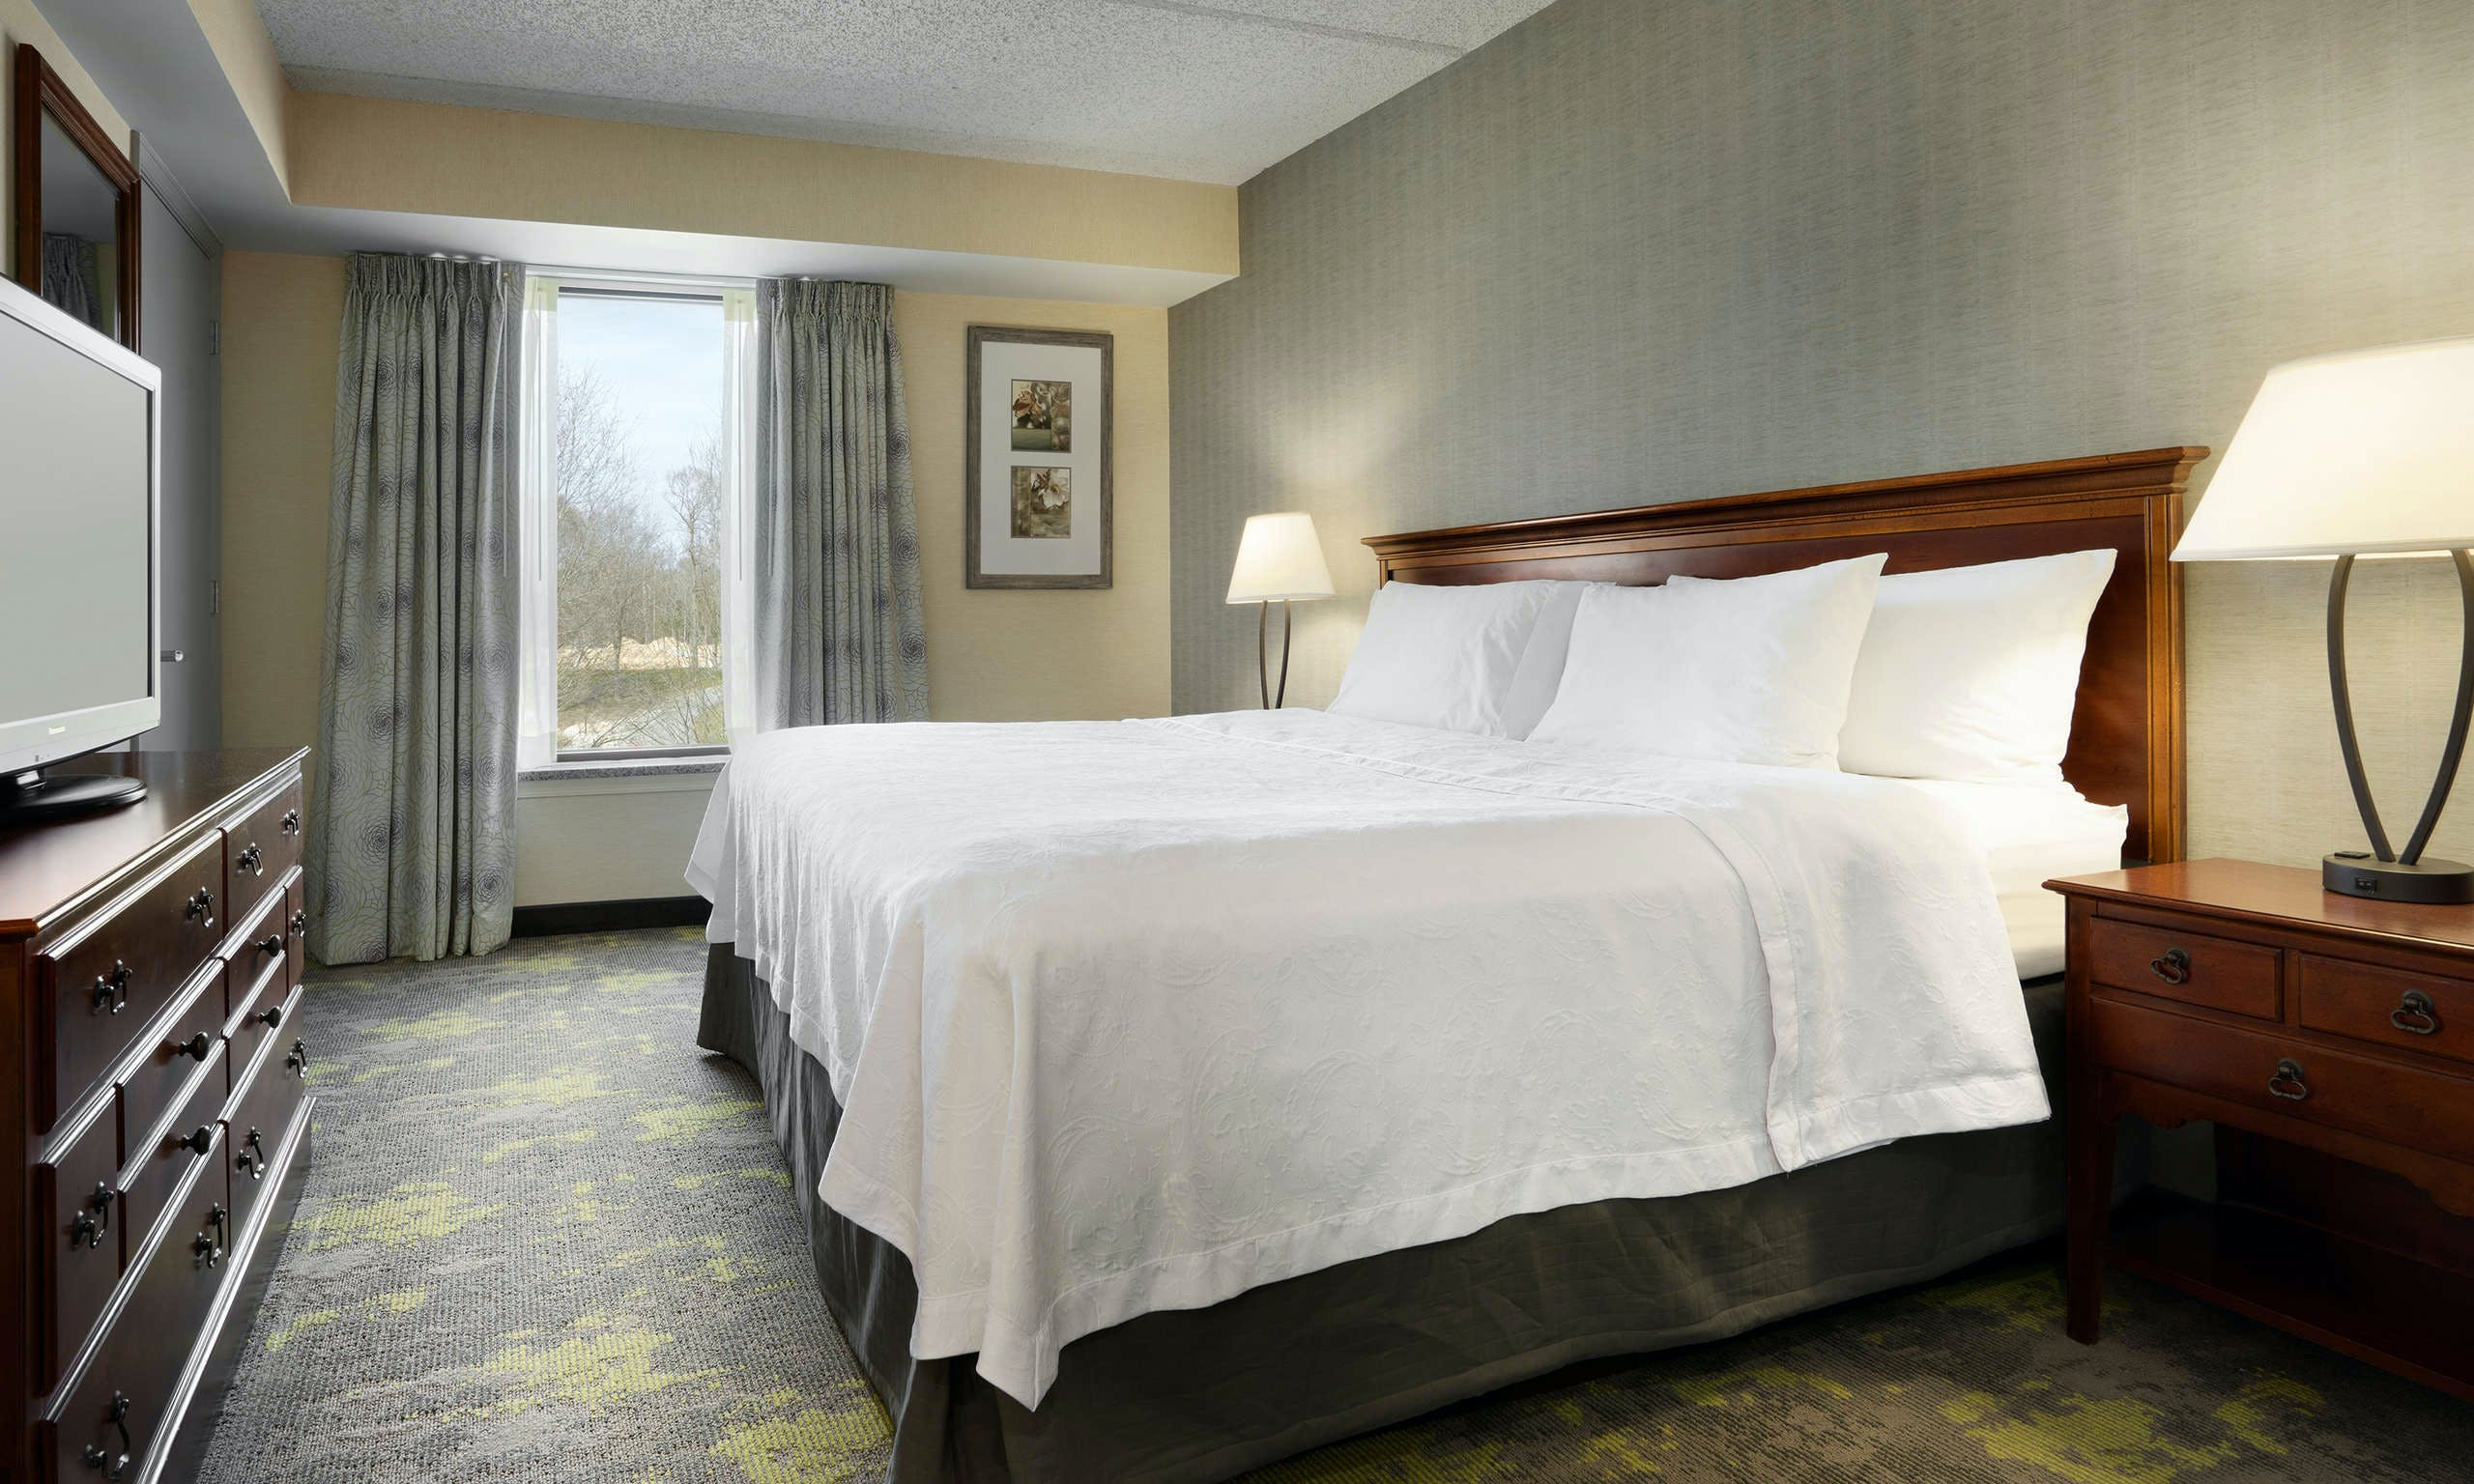 Homewood Suites by Hilton Williamsburg